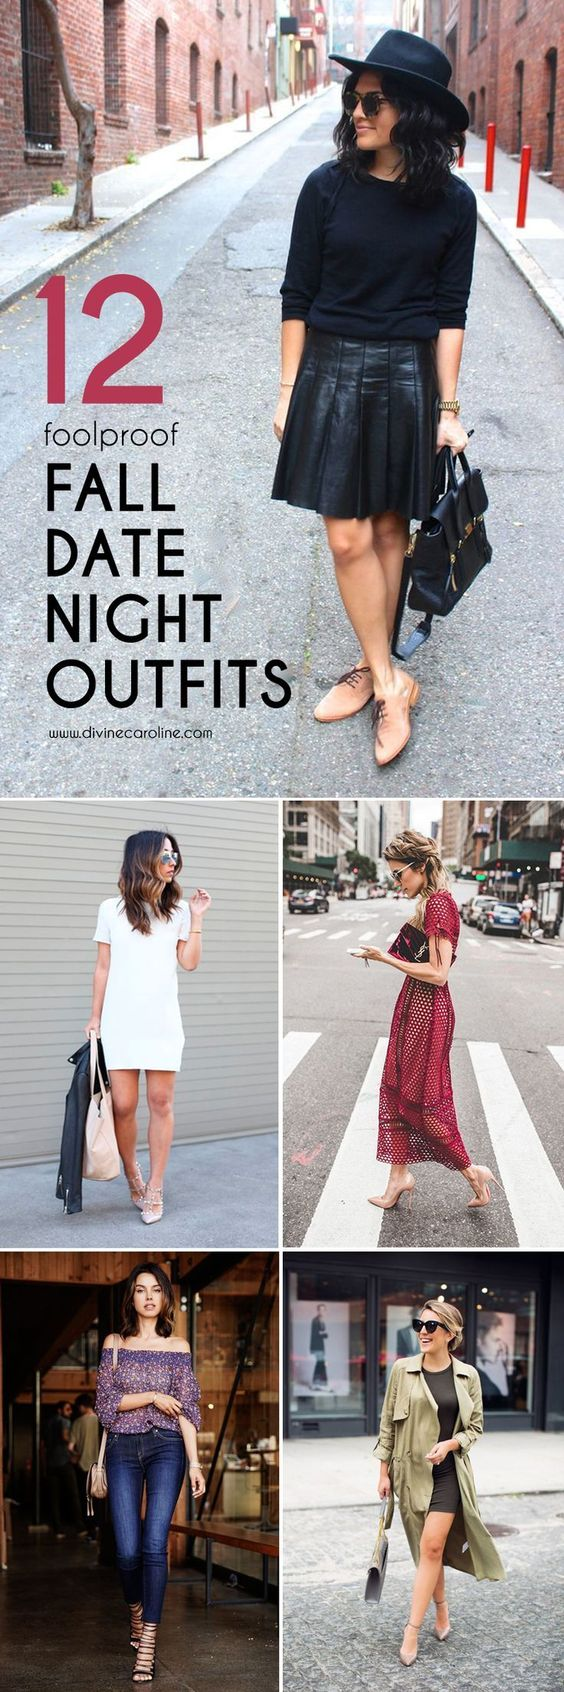 12 foolproof fall date night outfits - Todaywedate.com